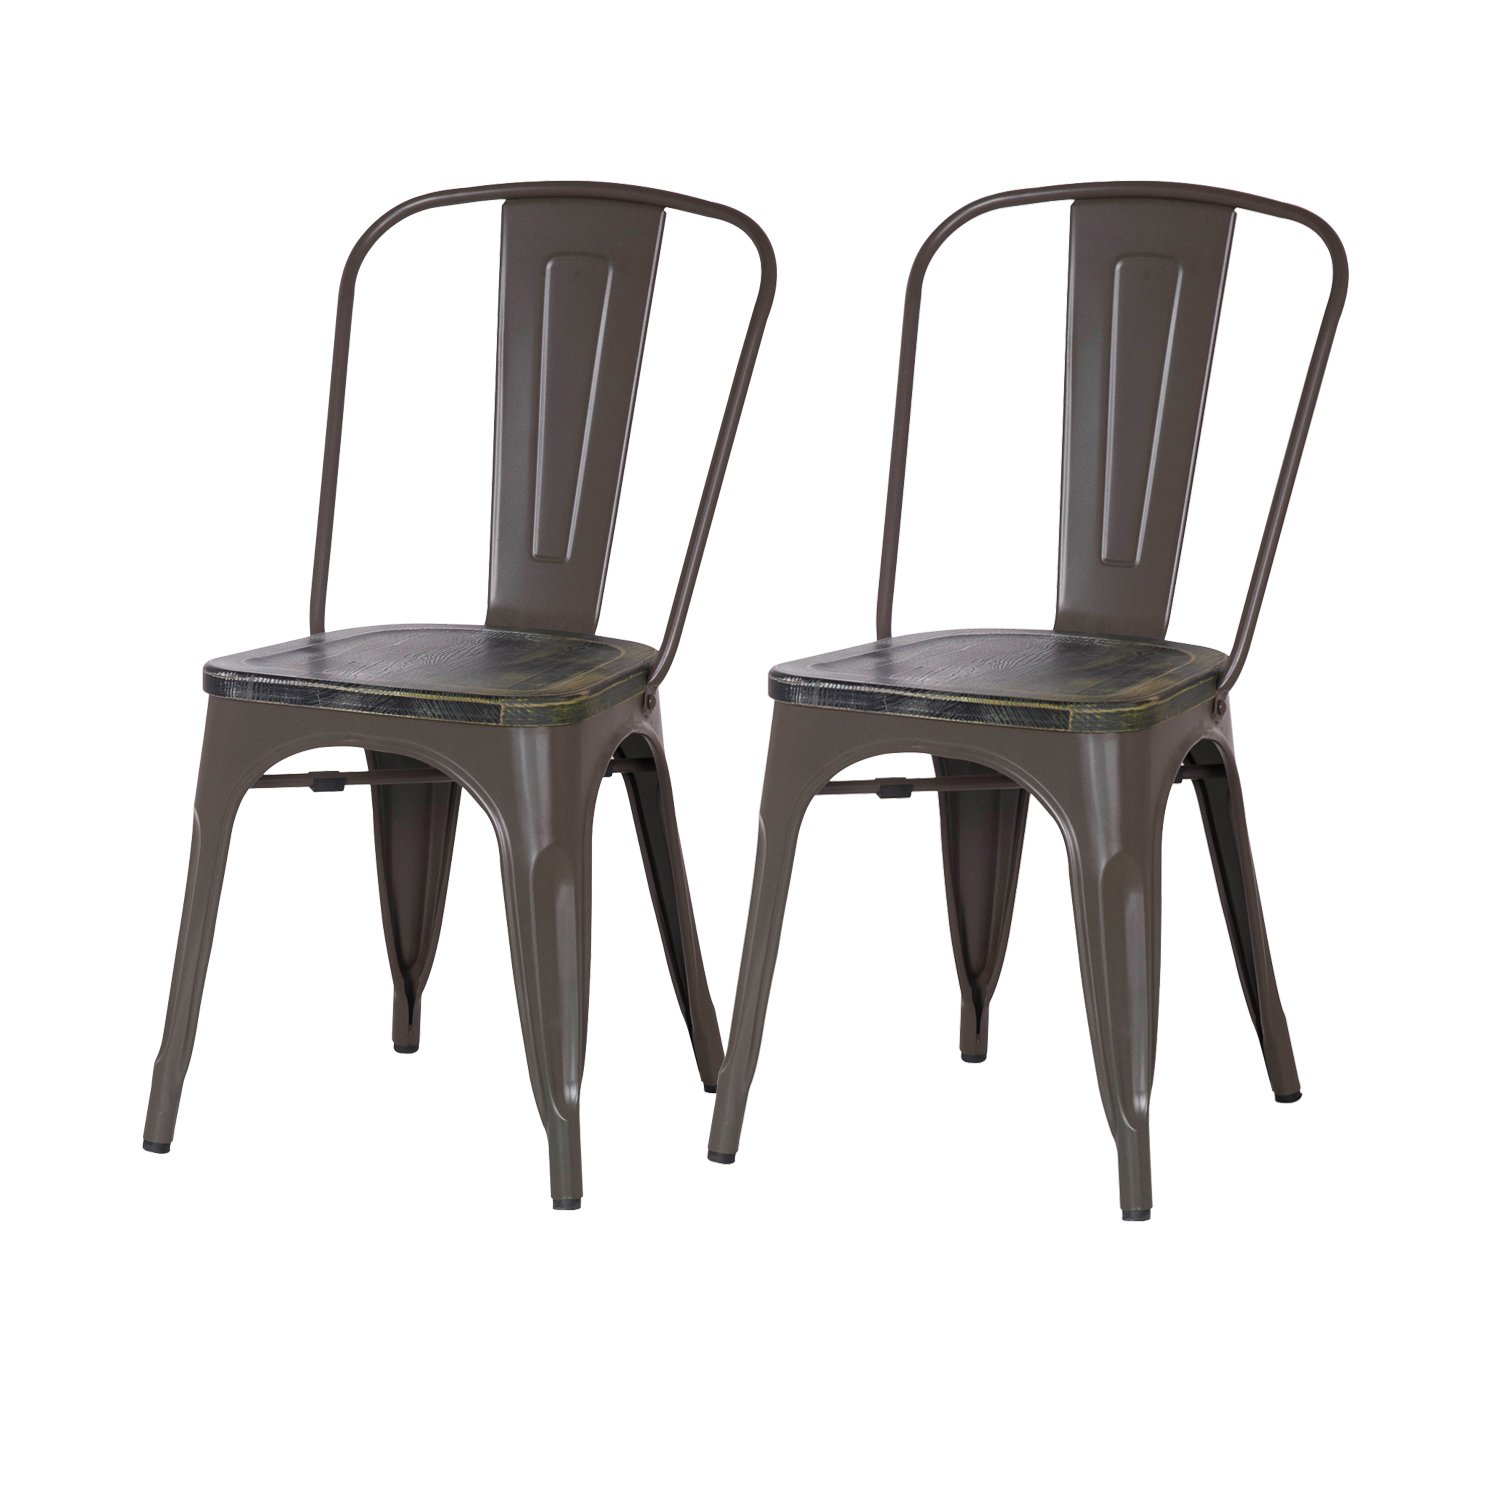 Asense Distressed Paint Tolix Style Steel Dining Chair with Wooden Seat 33 Inch Height, A Set of Two Frosted Coffee